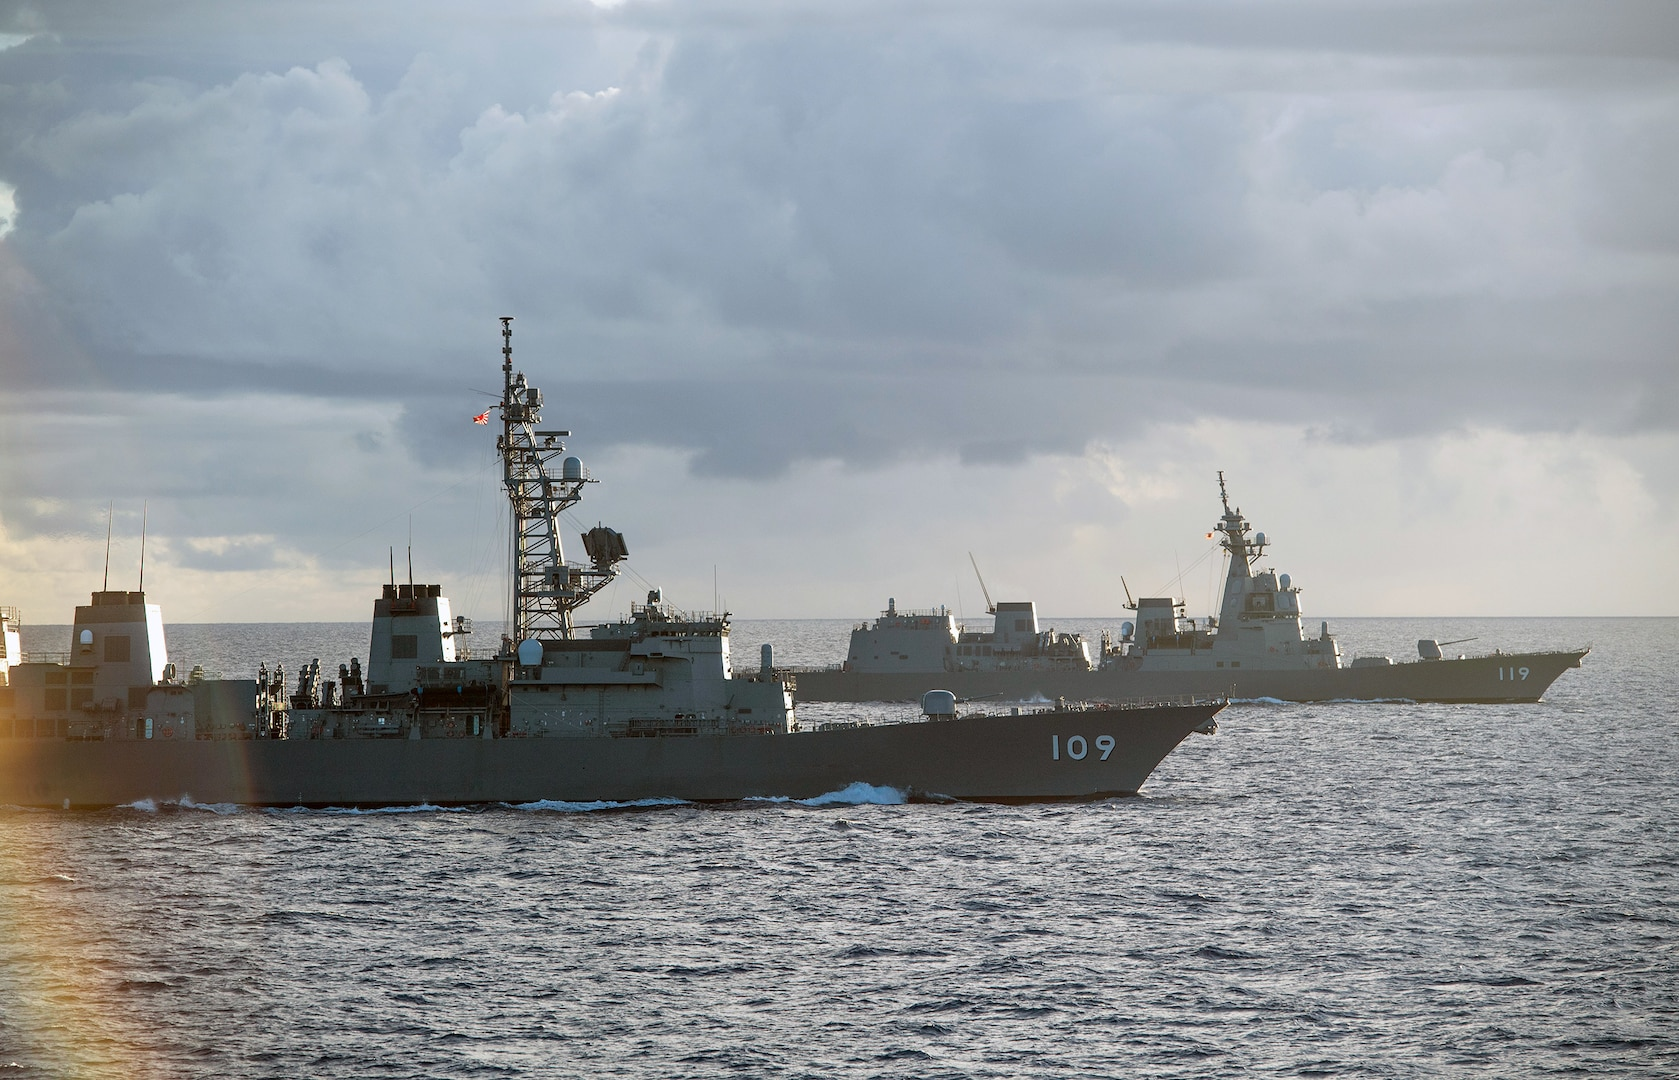 U.S. Navy, Japan Maritime Self-Defense Force Sail Together in Philippine Sea